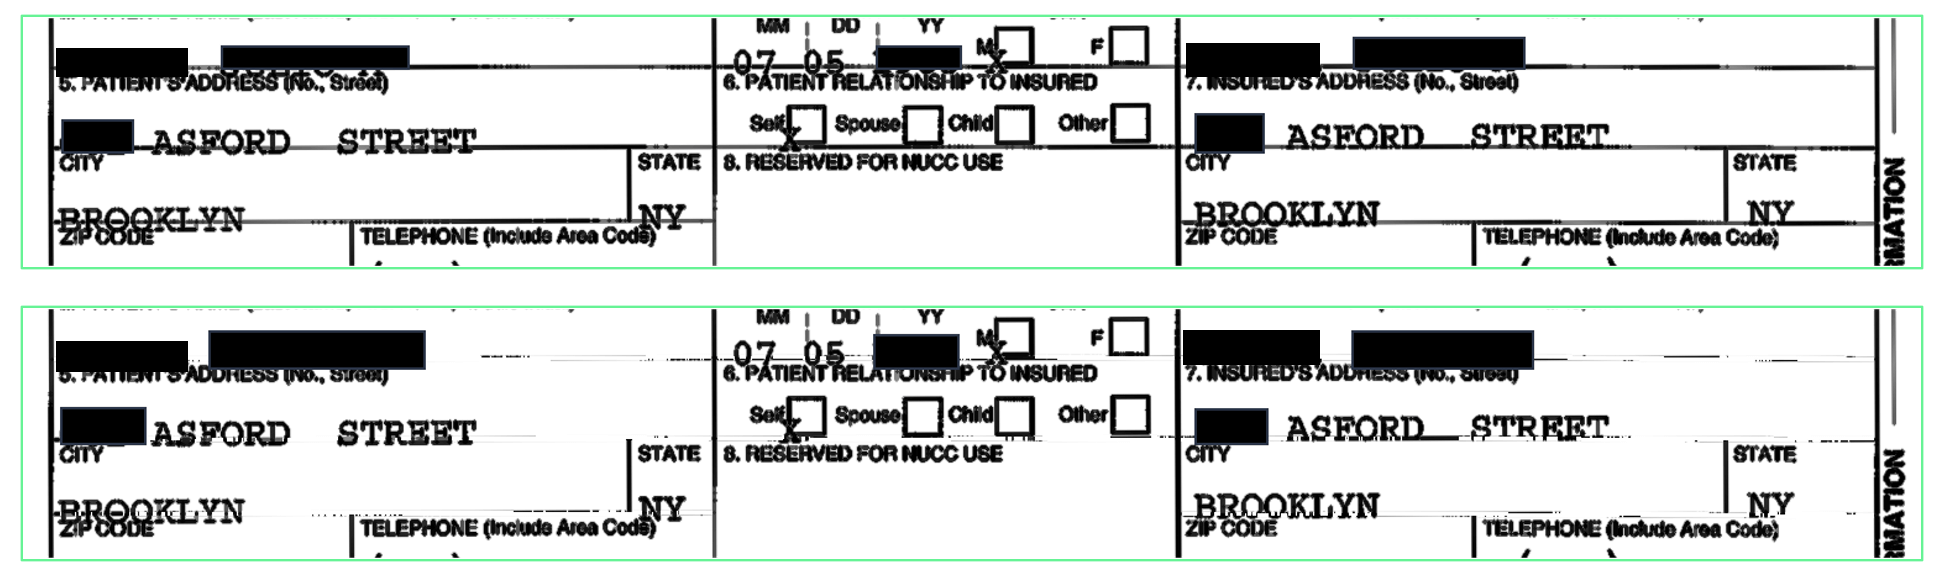 Image of a CMS-1500 form where information is outside the correct box.